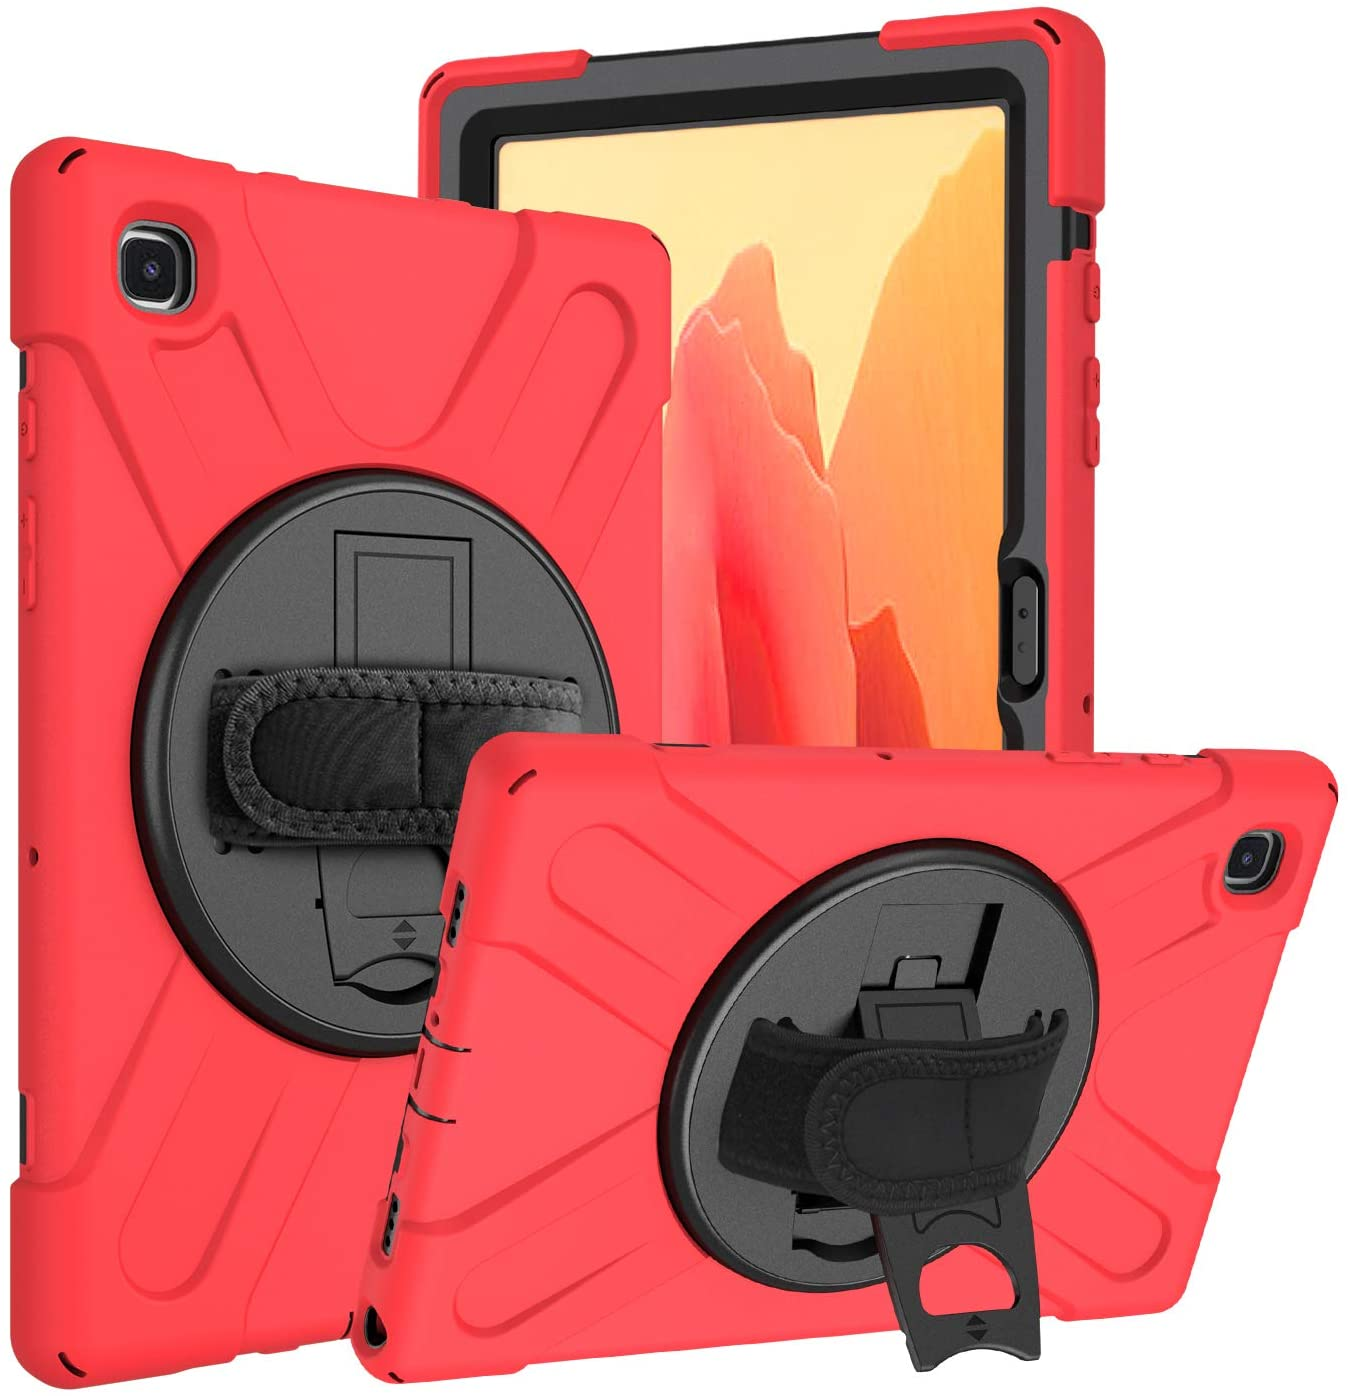 Galaxy Tab A7 10.4 T500/T505 Case, KIQ Heavy Duty Shockproof Case, Cover, Stand, Hand/Palm Grip, Carrying Shoulder Strap Sling for Samsung Galaxy Tab A7 10.4-inch 2020 SM-T500 SM-T505 [Shield Red]